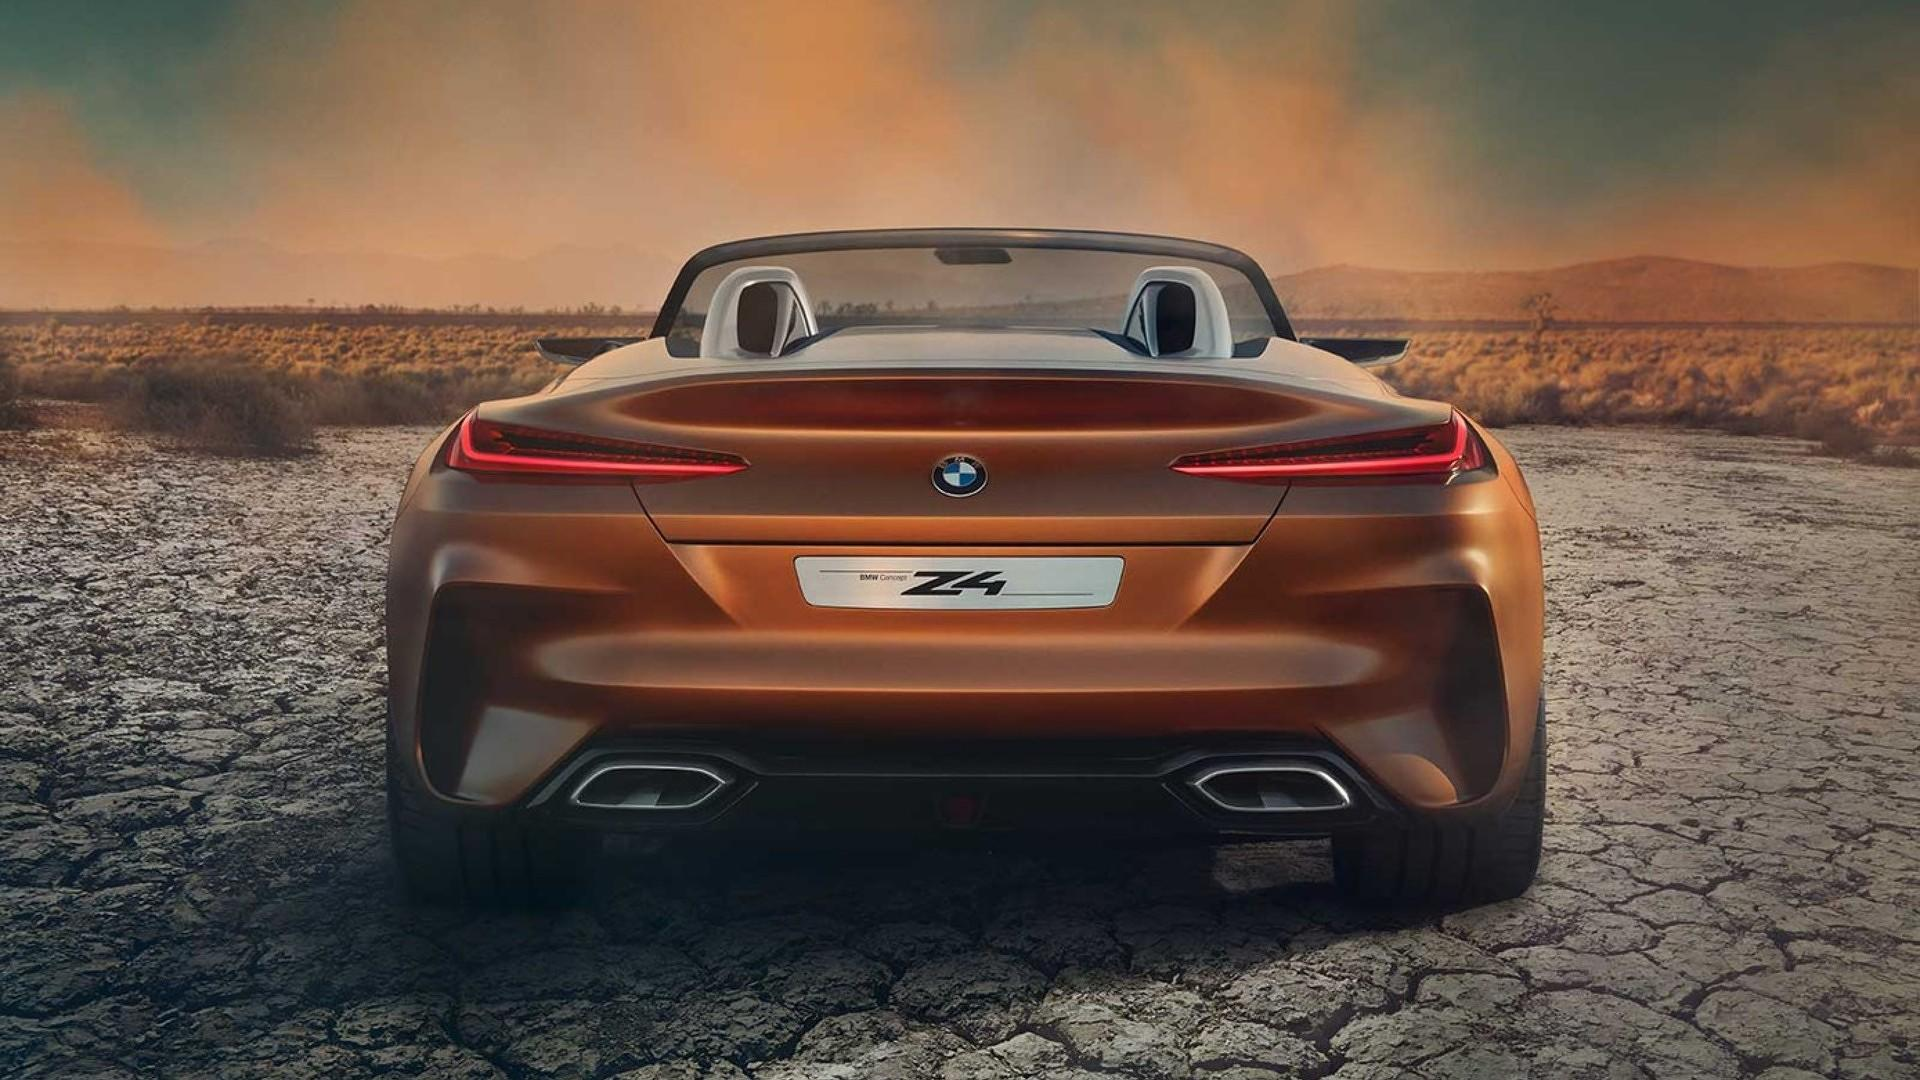 2018 Bmw Z4 M40i Prototype Sounds Angry Lapping The